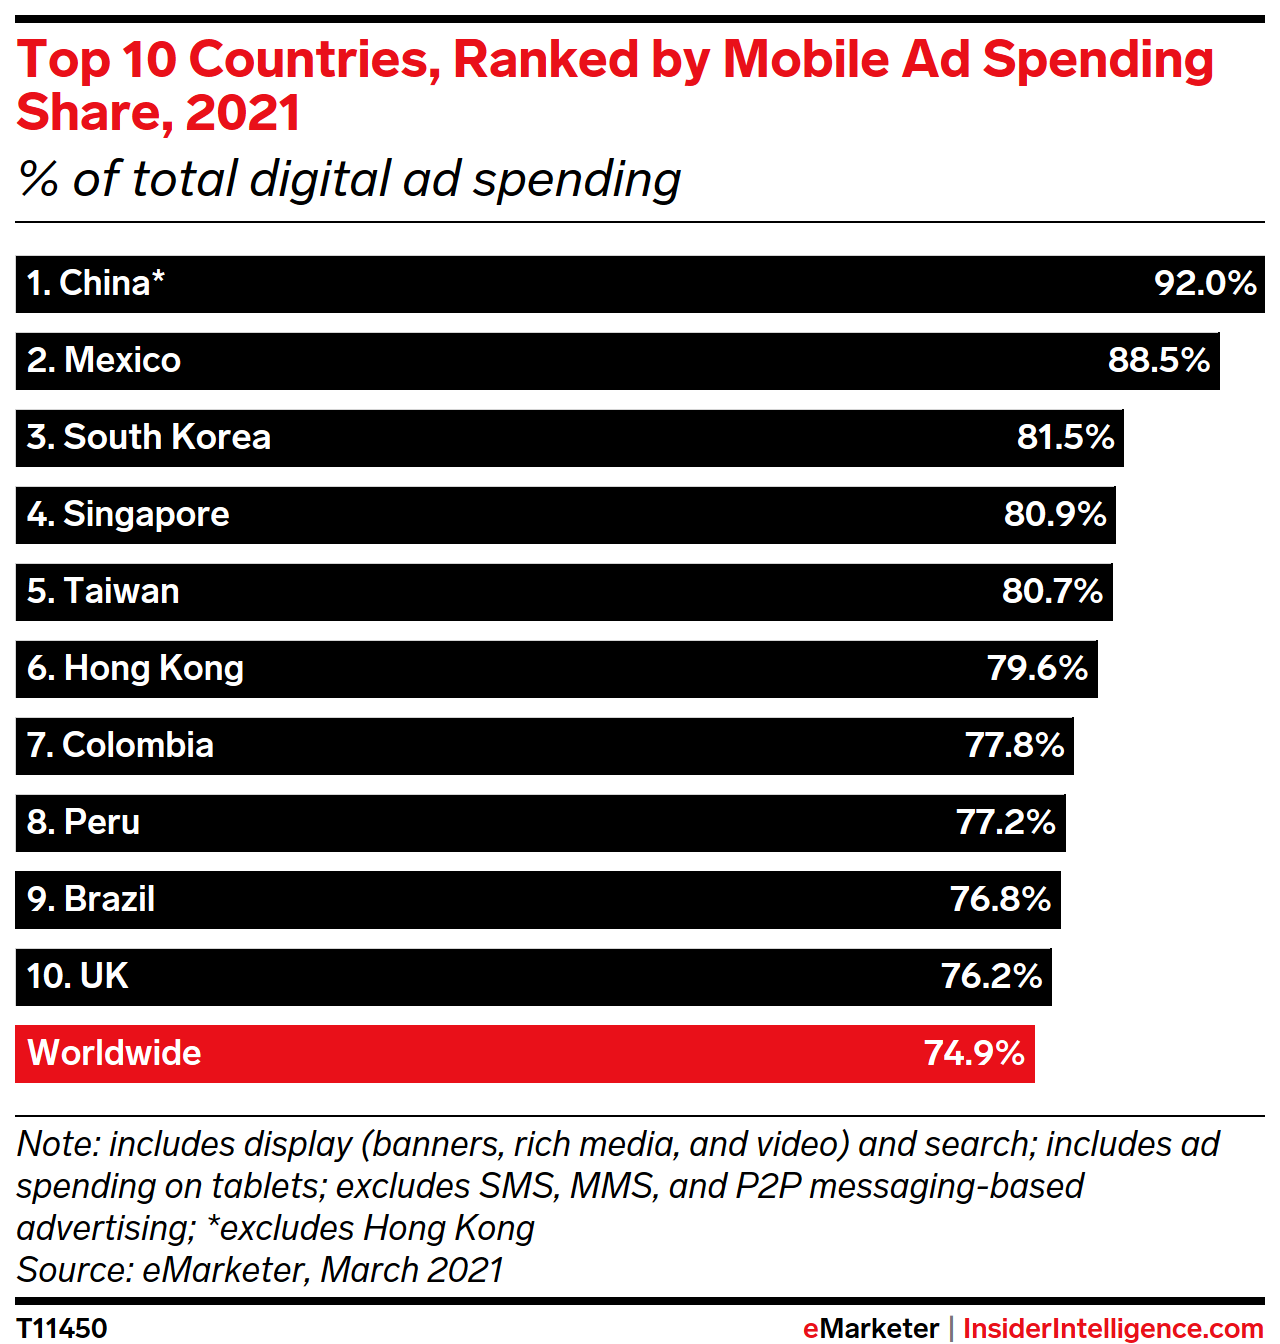 Top 10 Countries, Ranked by Mobile Ad Spending Share, 2021 (% of total digital ad spending)